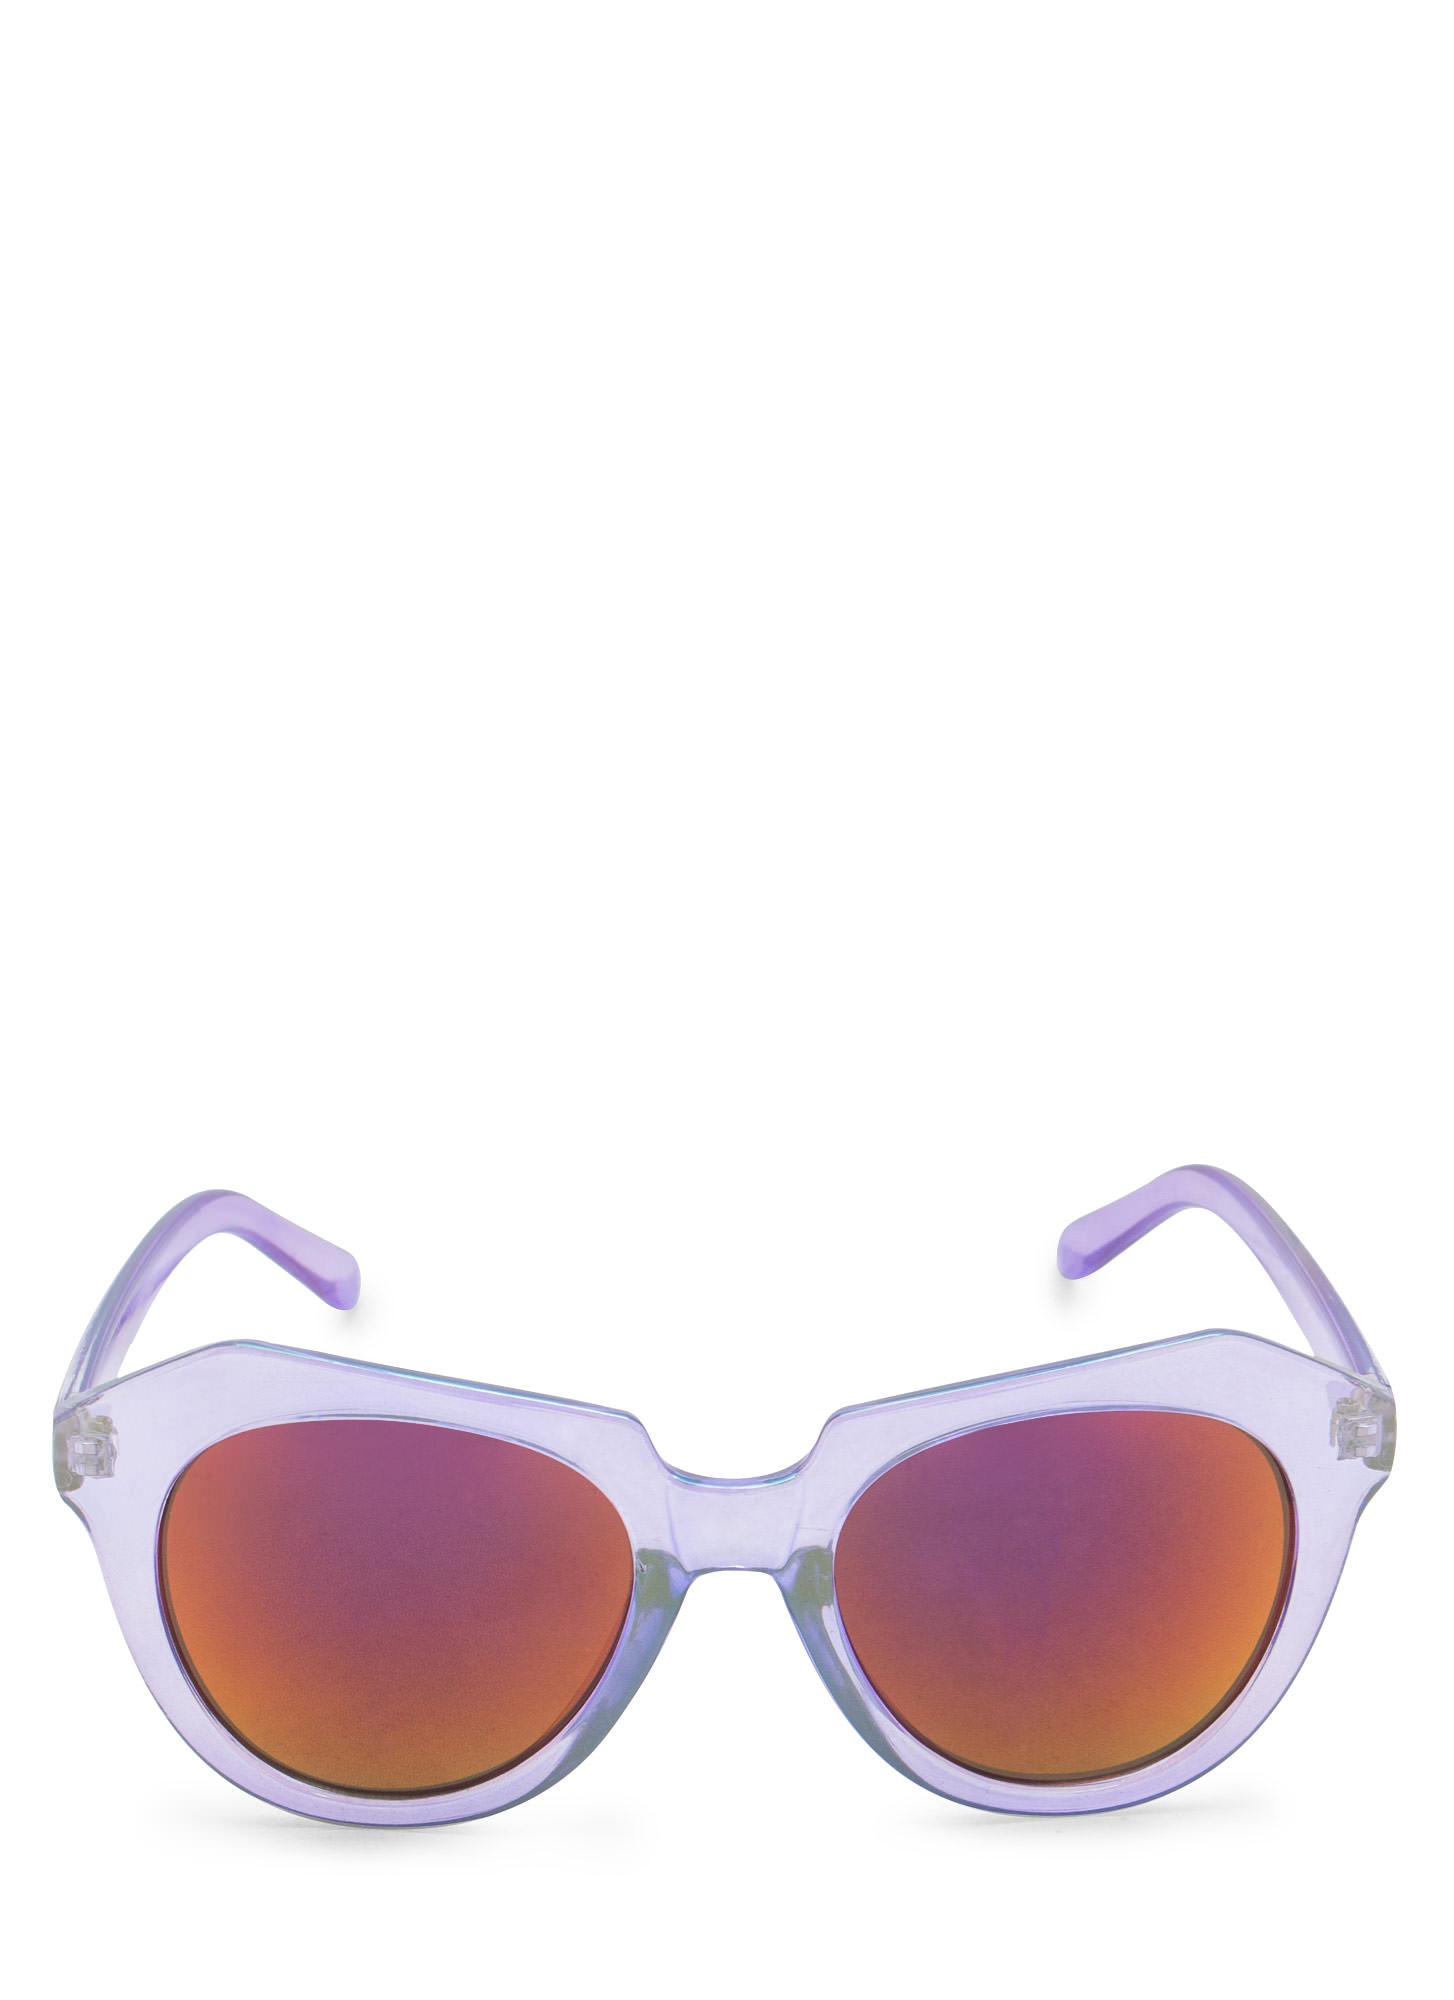 Angled Look Mirrored Sunglasses PURPLE